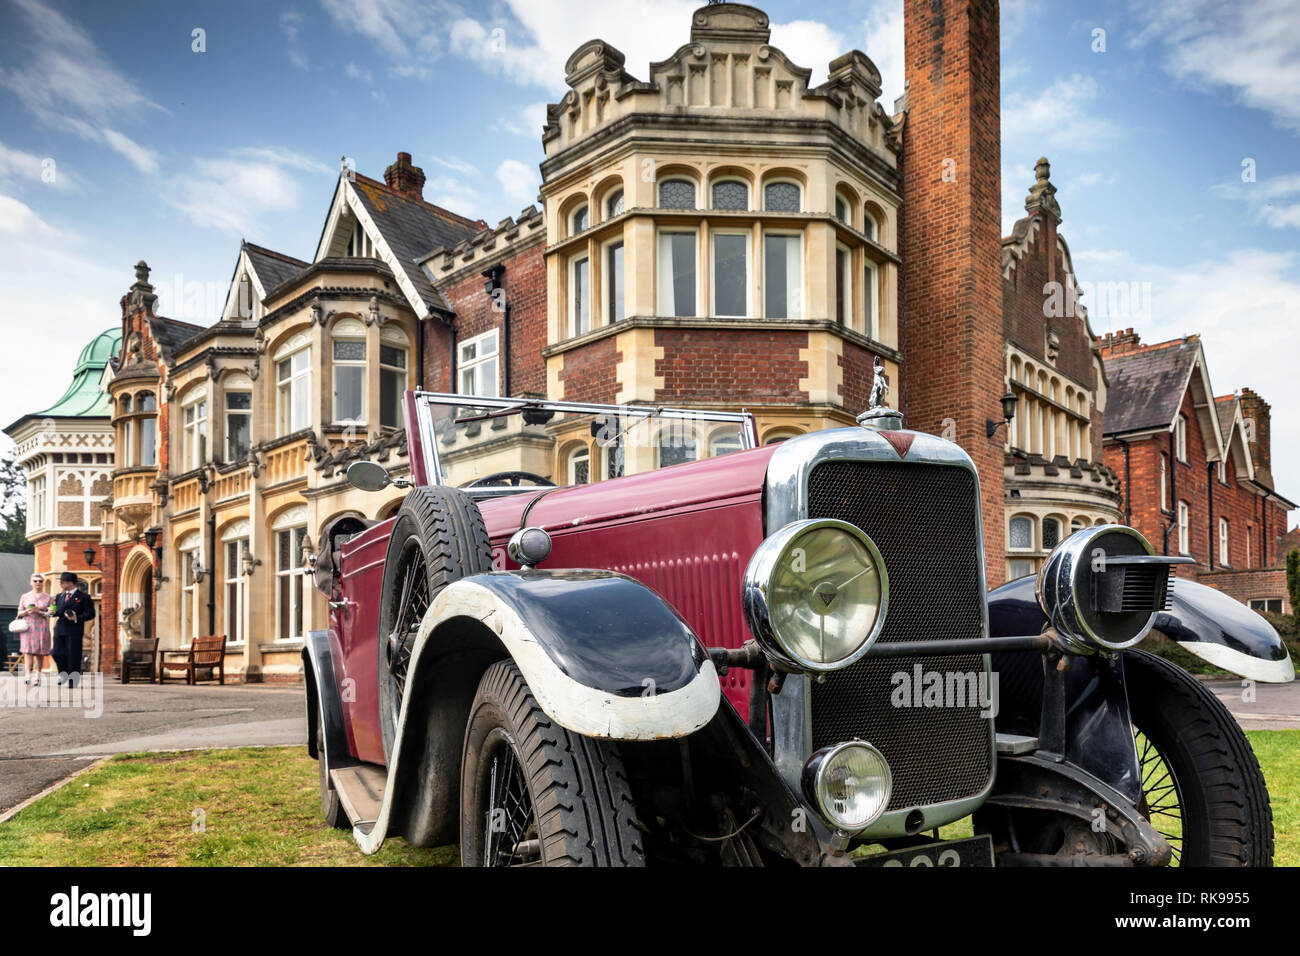 Country Mansion Car Stock Photos & Country Mansion Car Stock